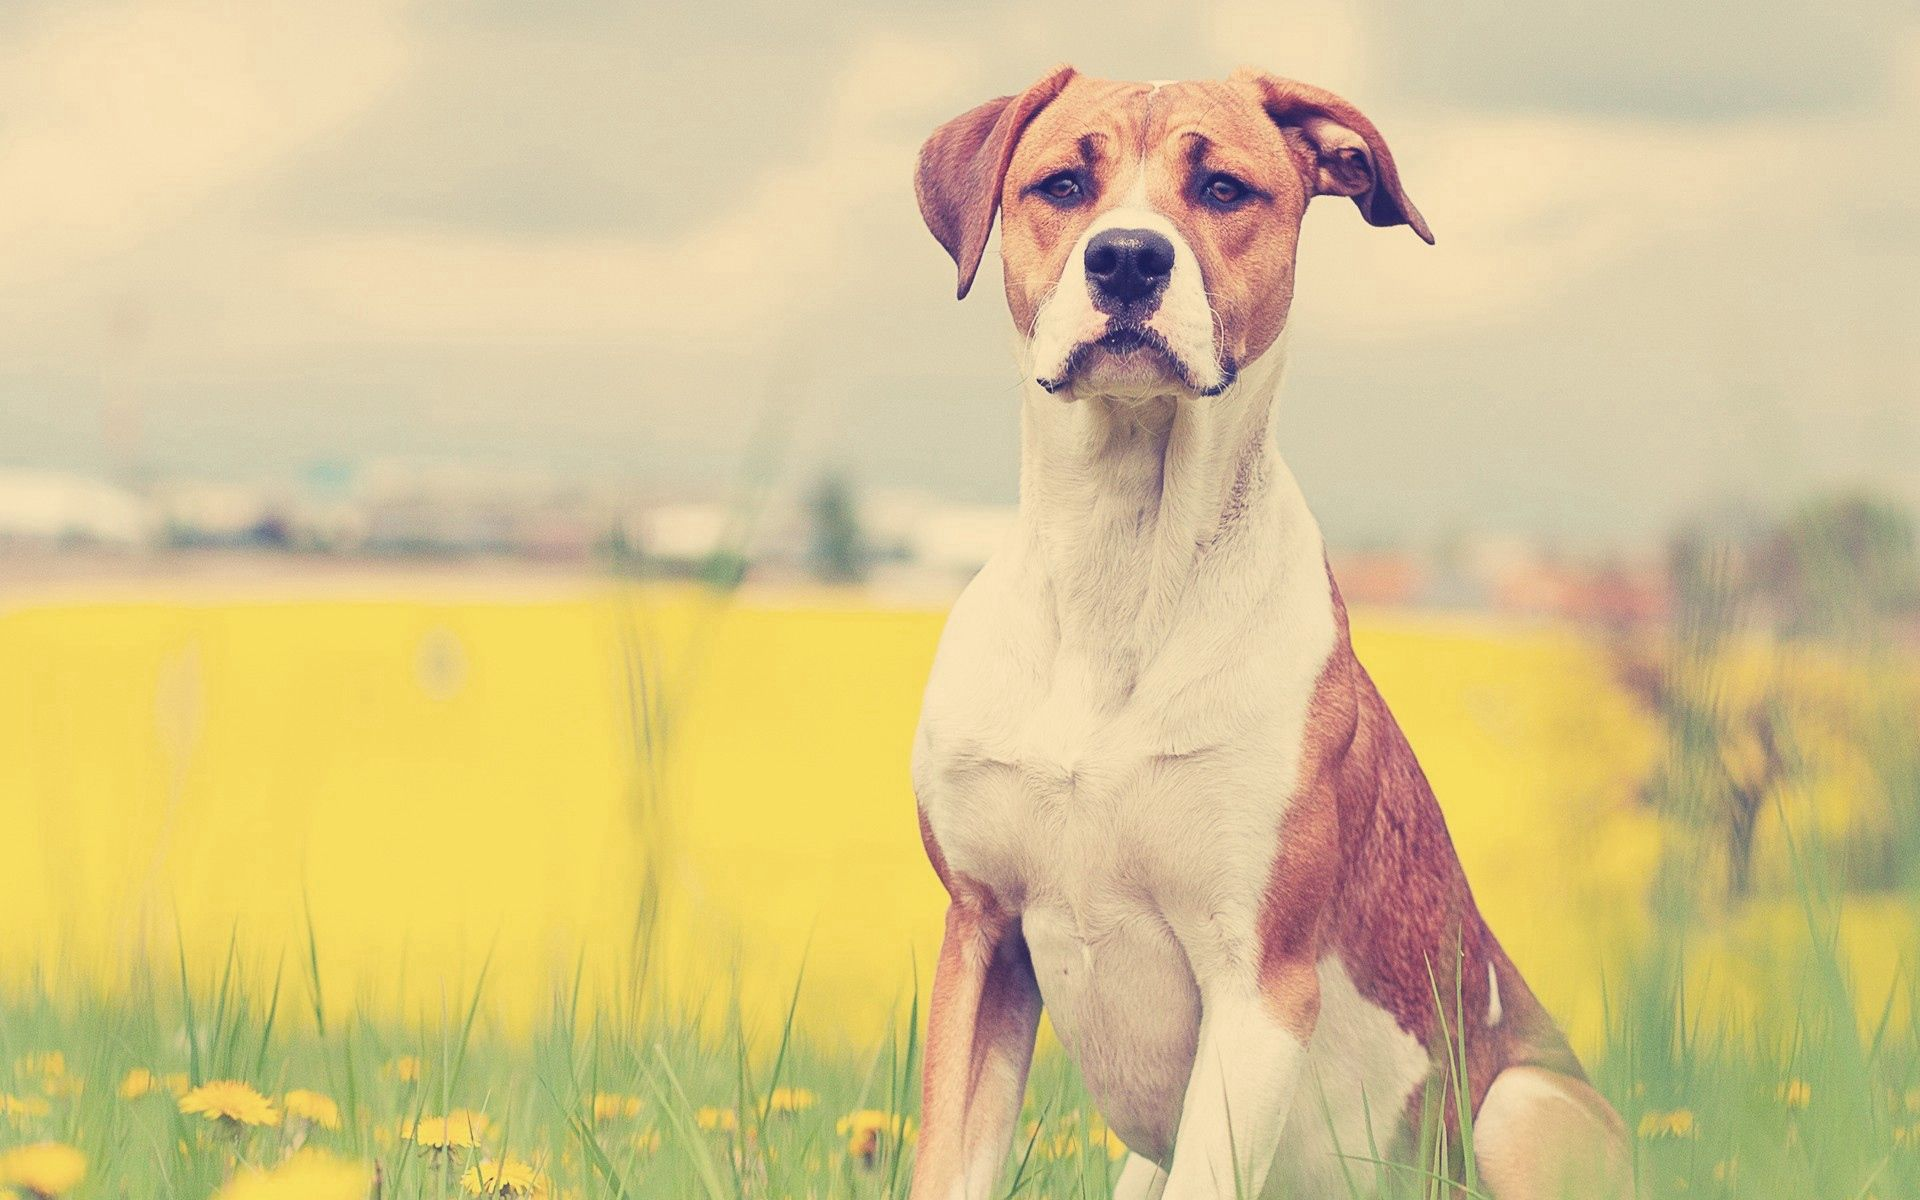 106559 download wallpaper Animals, Dog, Muzzle, Grass, Expectation, Waiting, Flowers screensavers and pictures for free